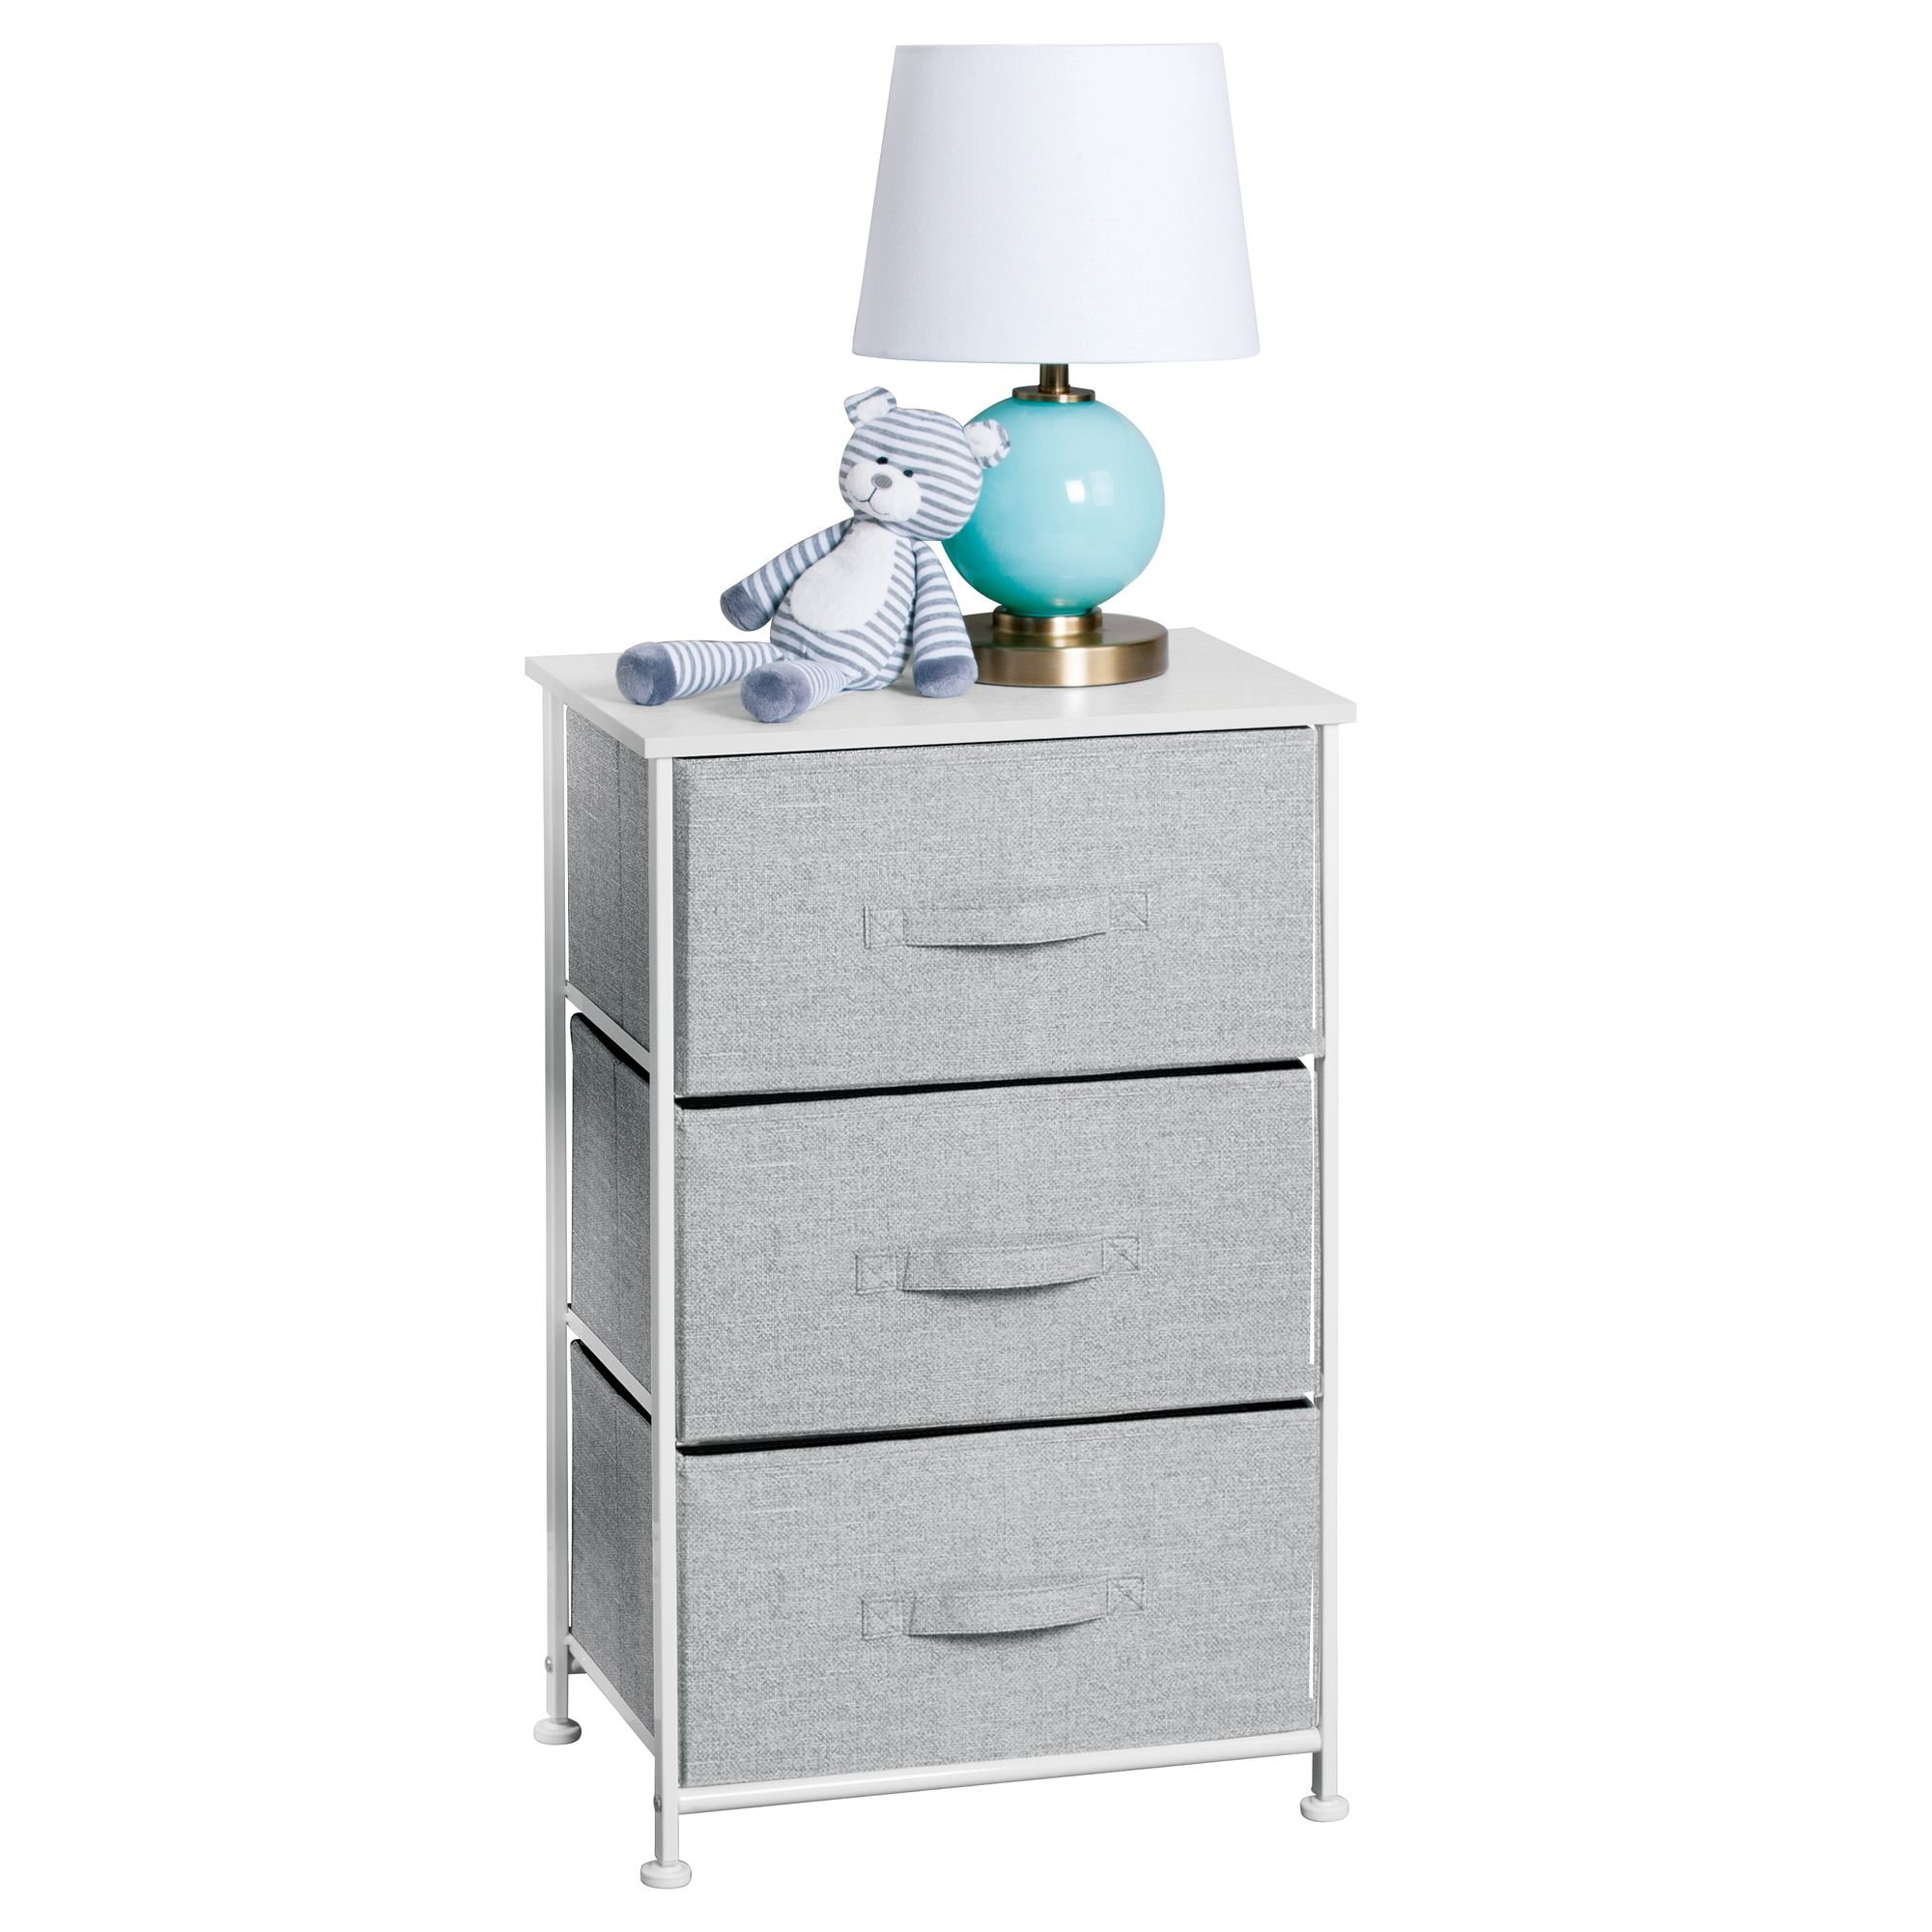 mDesign Fabric Baby 3-Drawer Dresser and Storage Organizer Unit for Nursery, Bedroom, Play Room - Gray